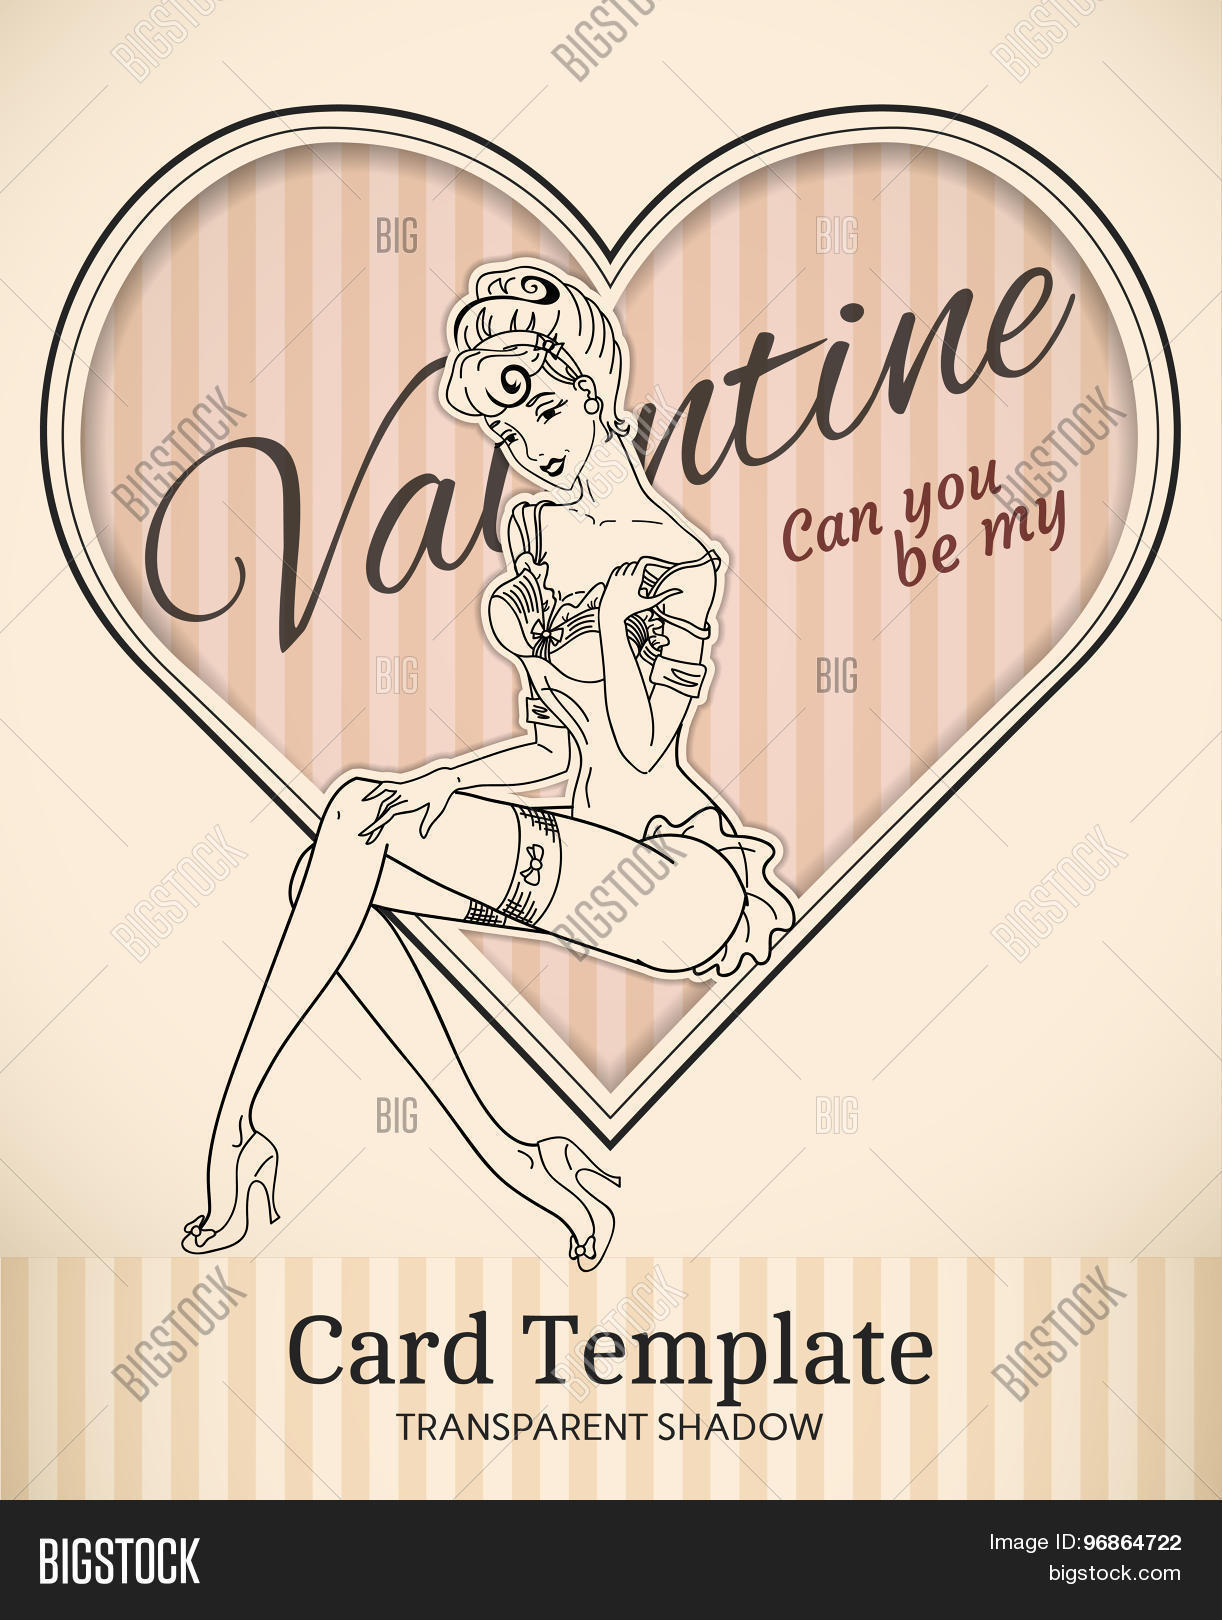 Valentine heart card vector photo free trial bigstock valentine heart card template maxwellsz